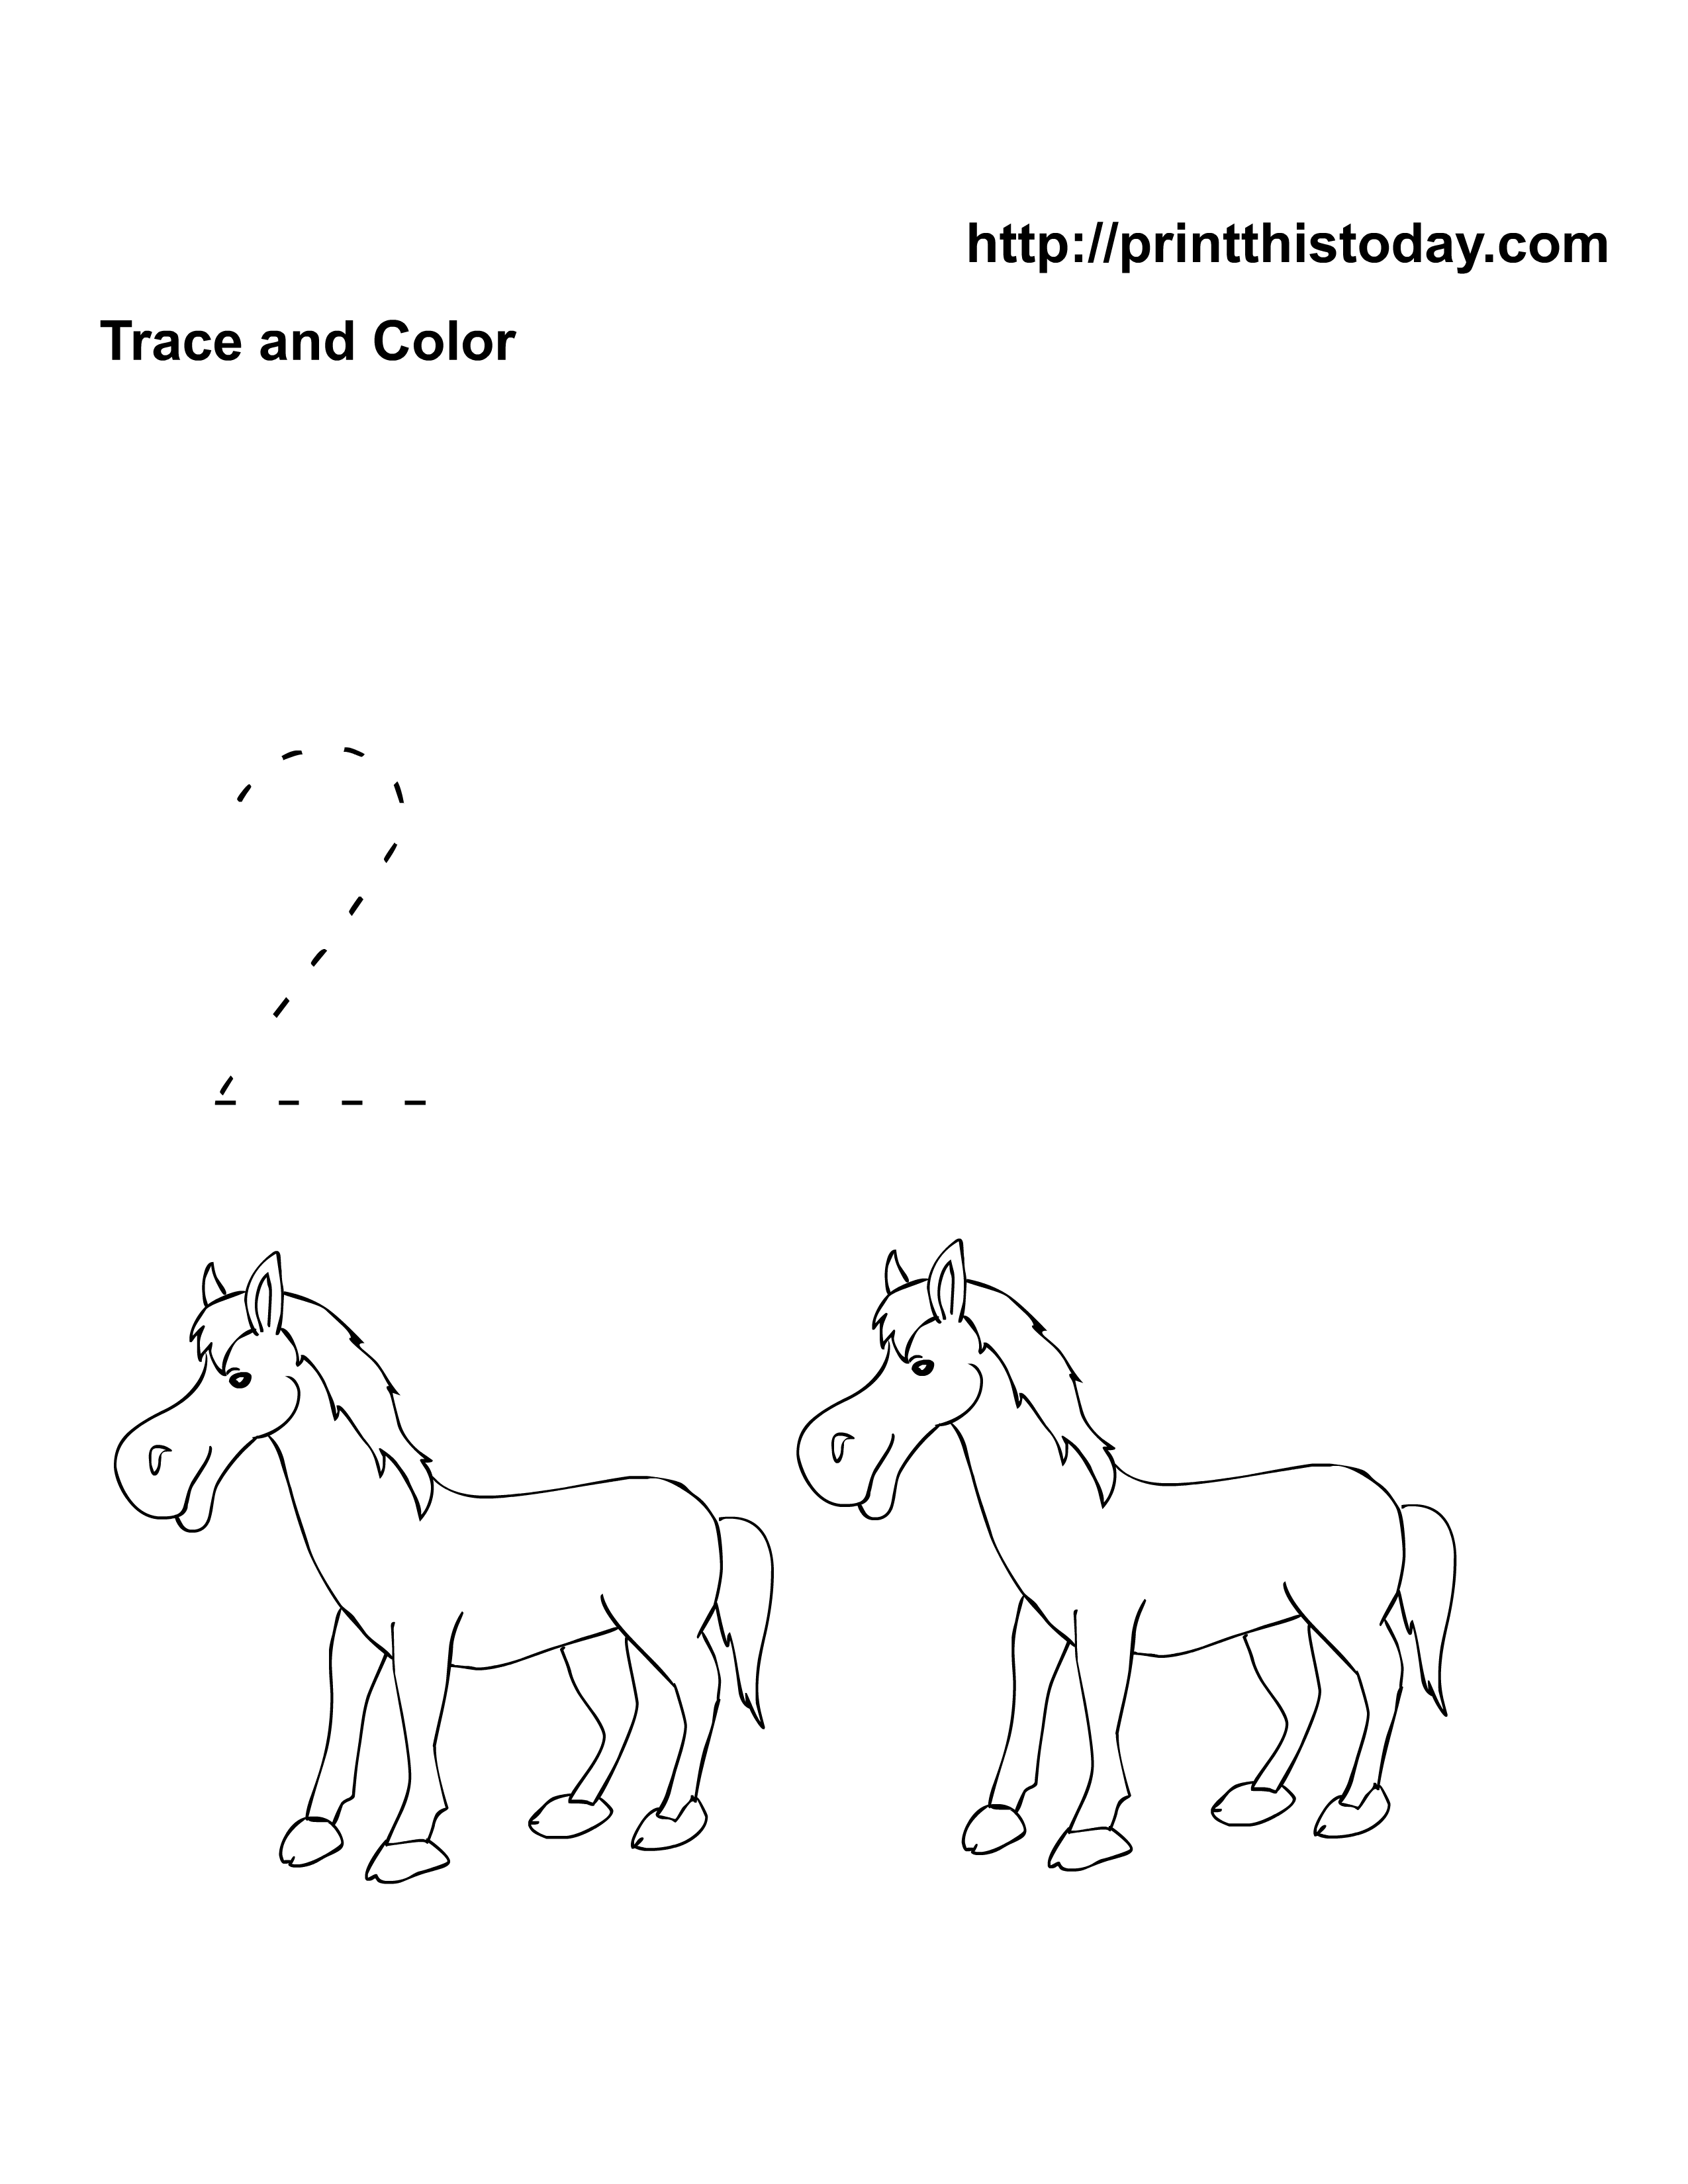 Pin By Szilvi Bukovszky On Learning Math Worksheets Teaching Toddlers Printable Preschool Worksheets [ 3300 x 2550 Pixel ]